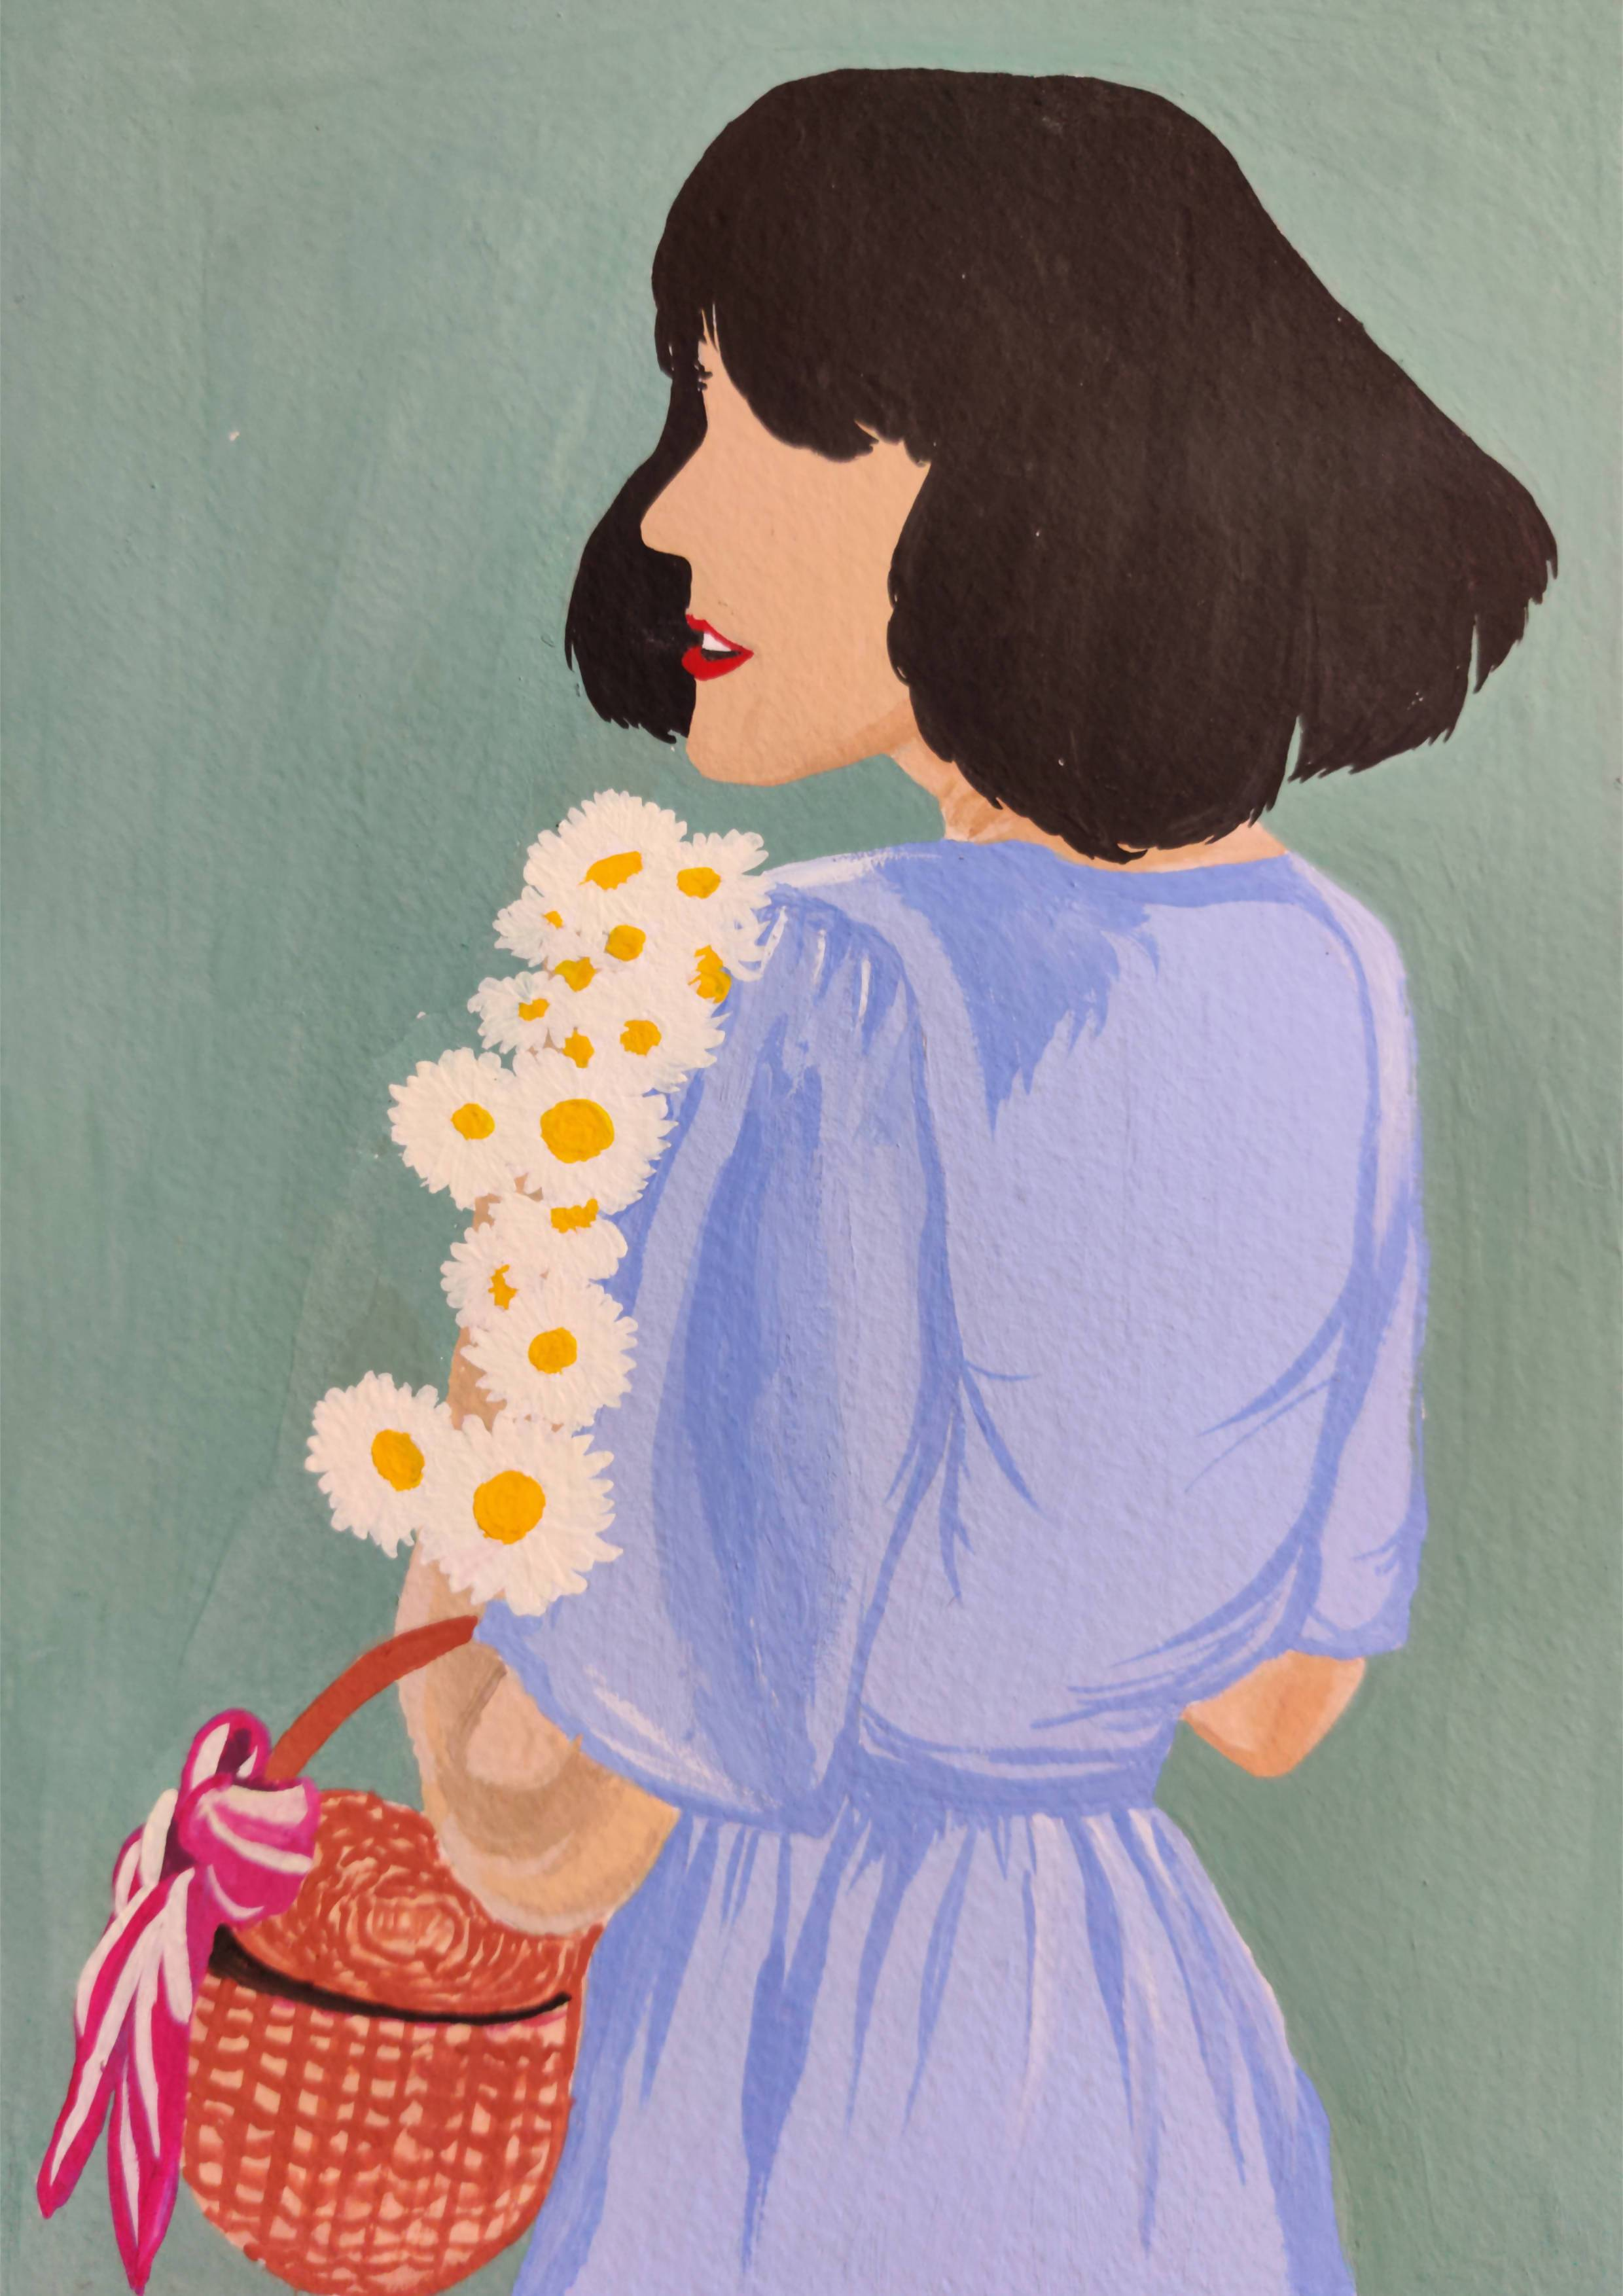 That Girl with daisies